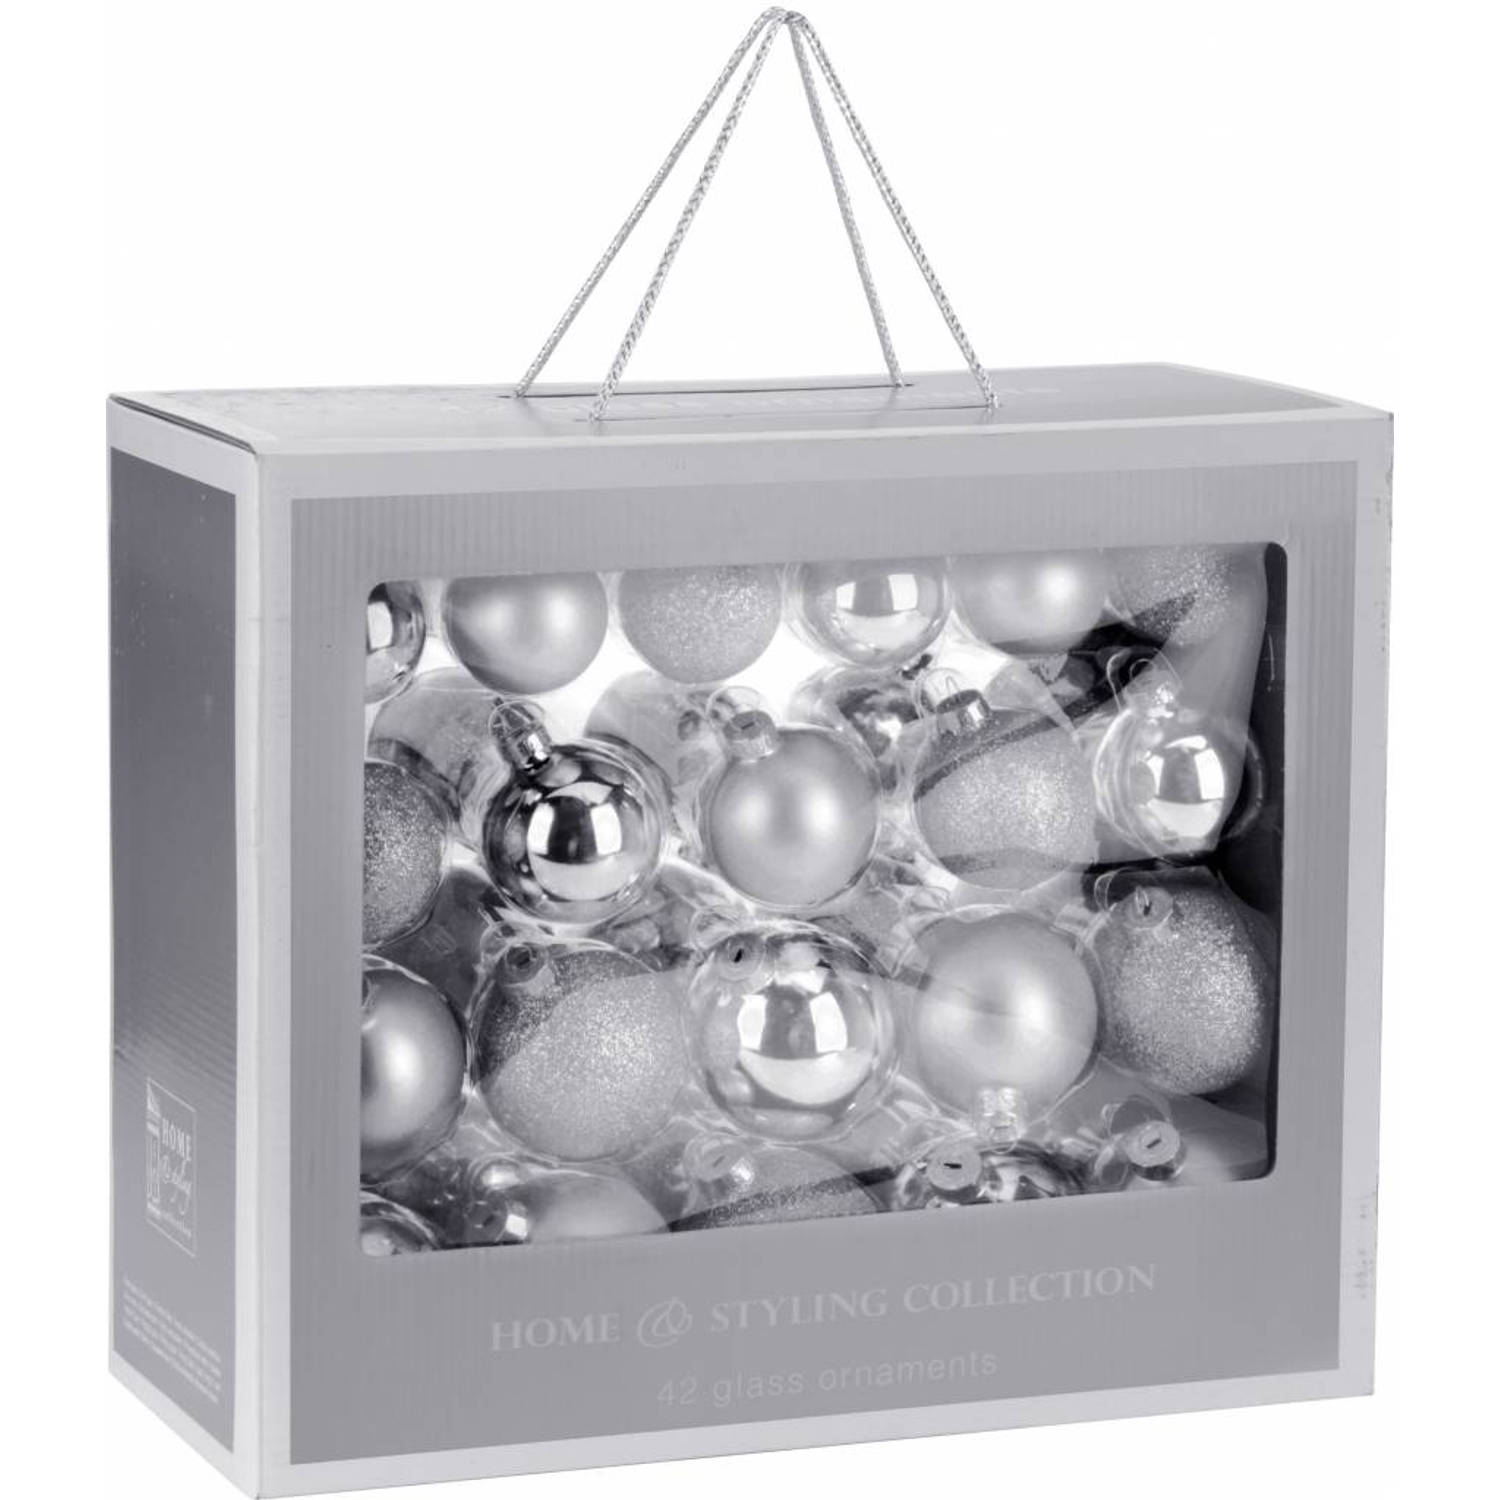 Home & Styling Collection 42-Delige glazen kerstballen set Zilver